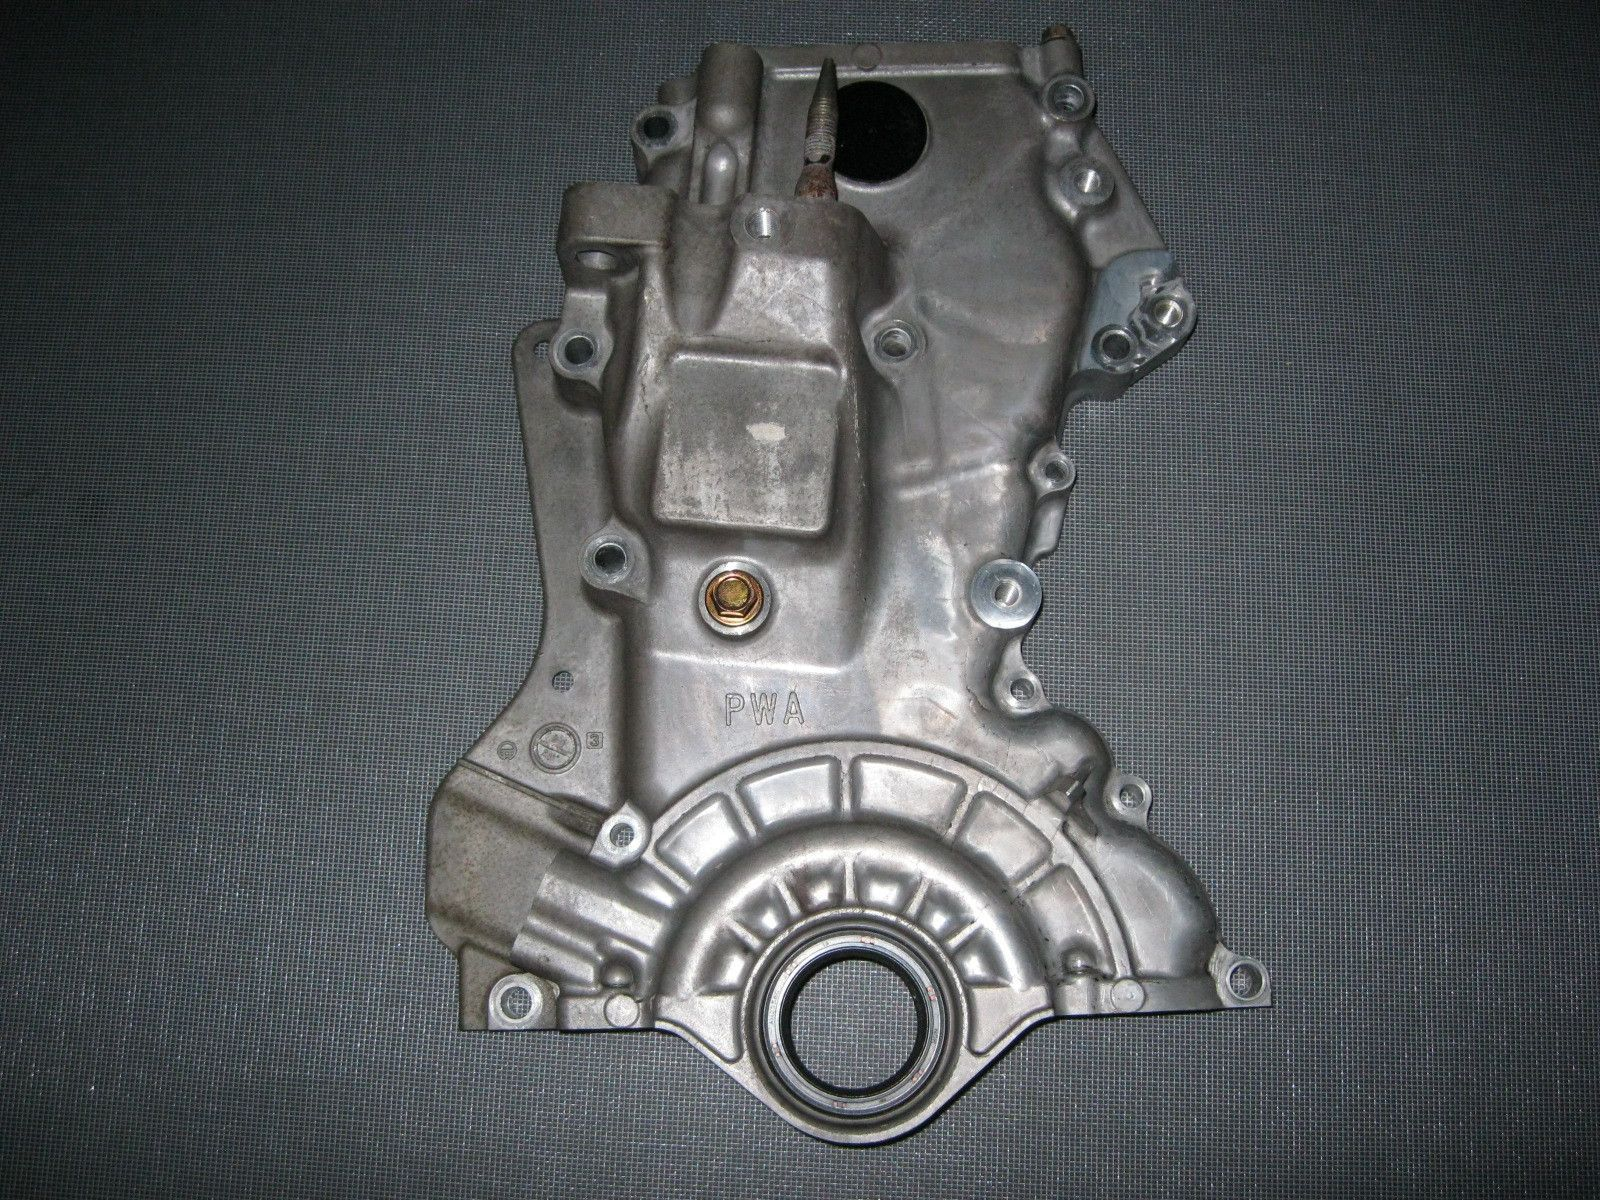 jdm 01 08 honda fit l13a i dsi engine timing chain front cover [ 1600 x 1200 Pixel ]